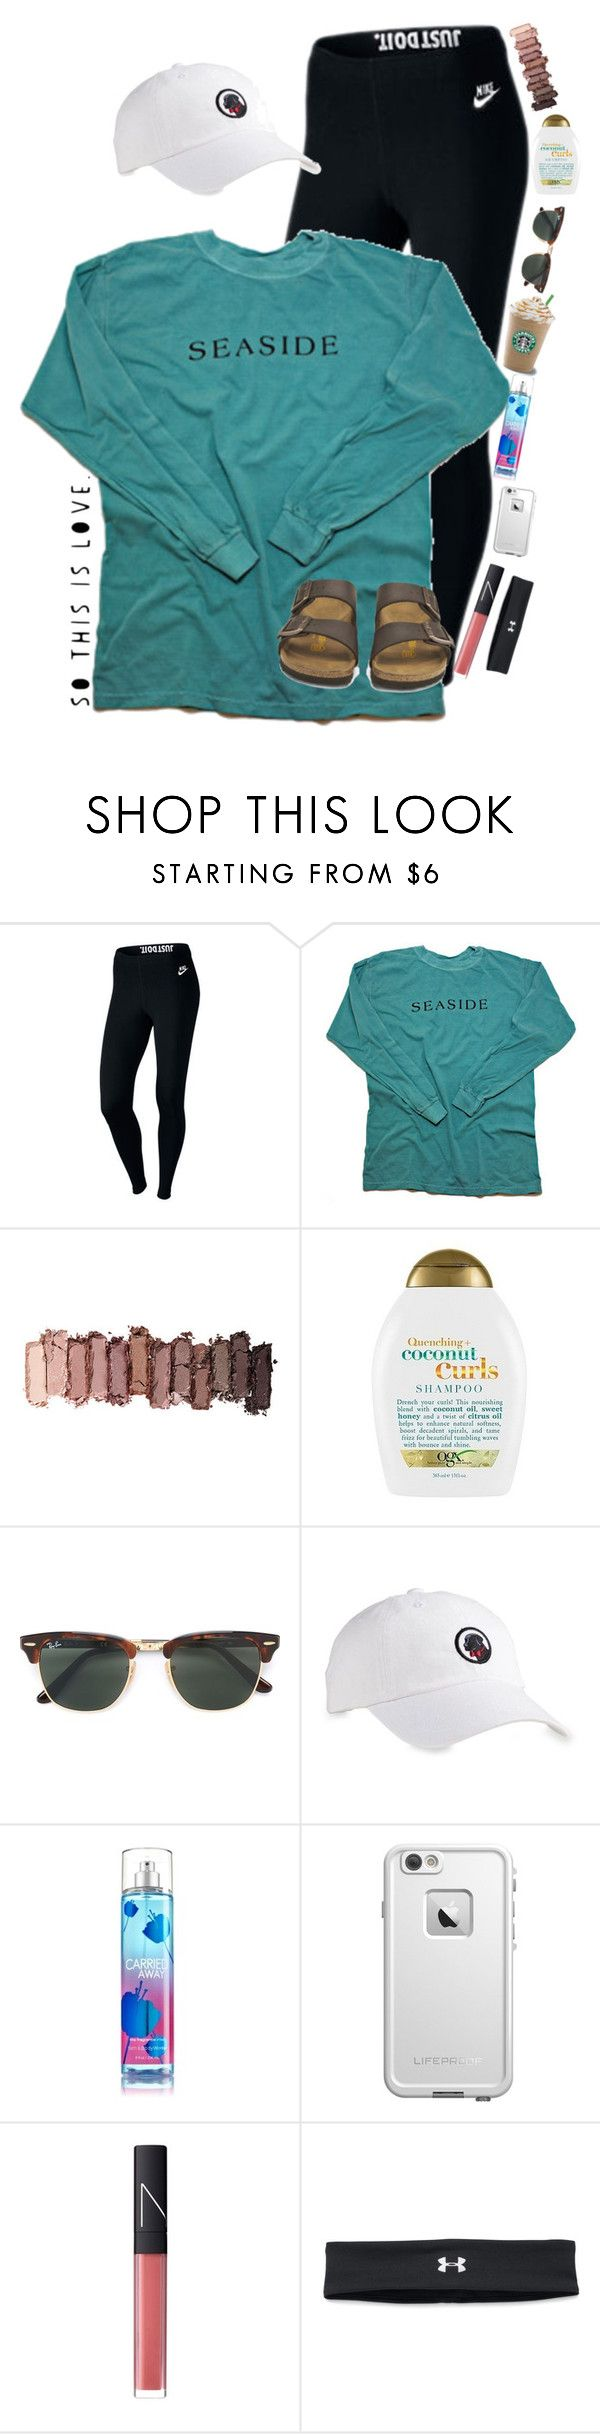 """""""•I am a lost boy from never land•"""" by lacrosse-19 ❤ liked on Polyvore featuring NIKE, Urban Decay, Organix, Ray-Ban, Southern Proper, LifeProof, NARS Cosmetics, Under Armour and Birkenstock"""